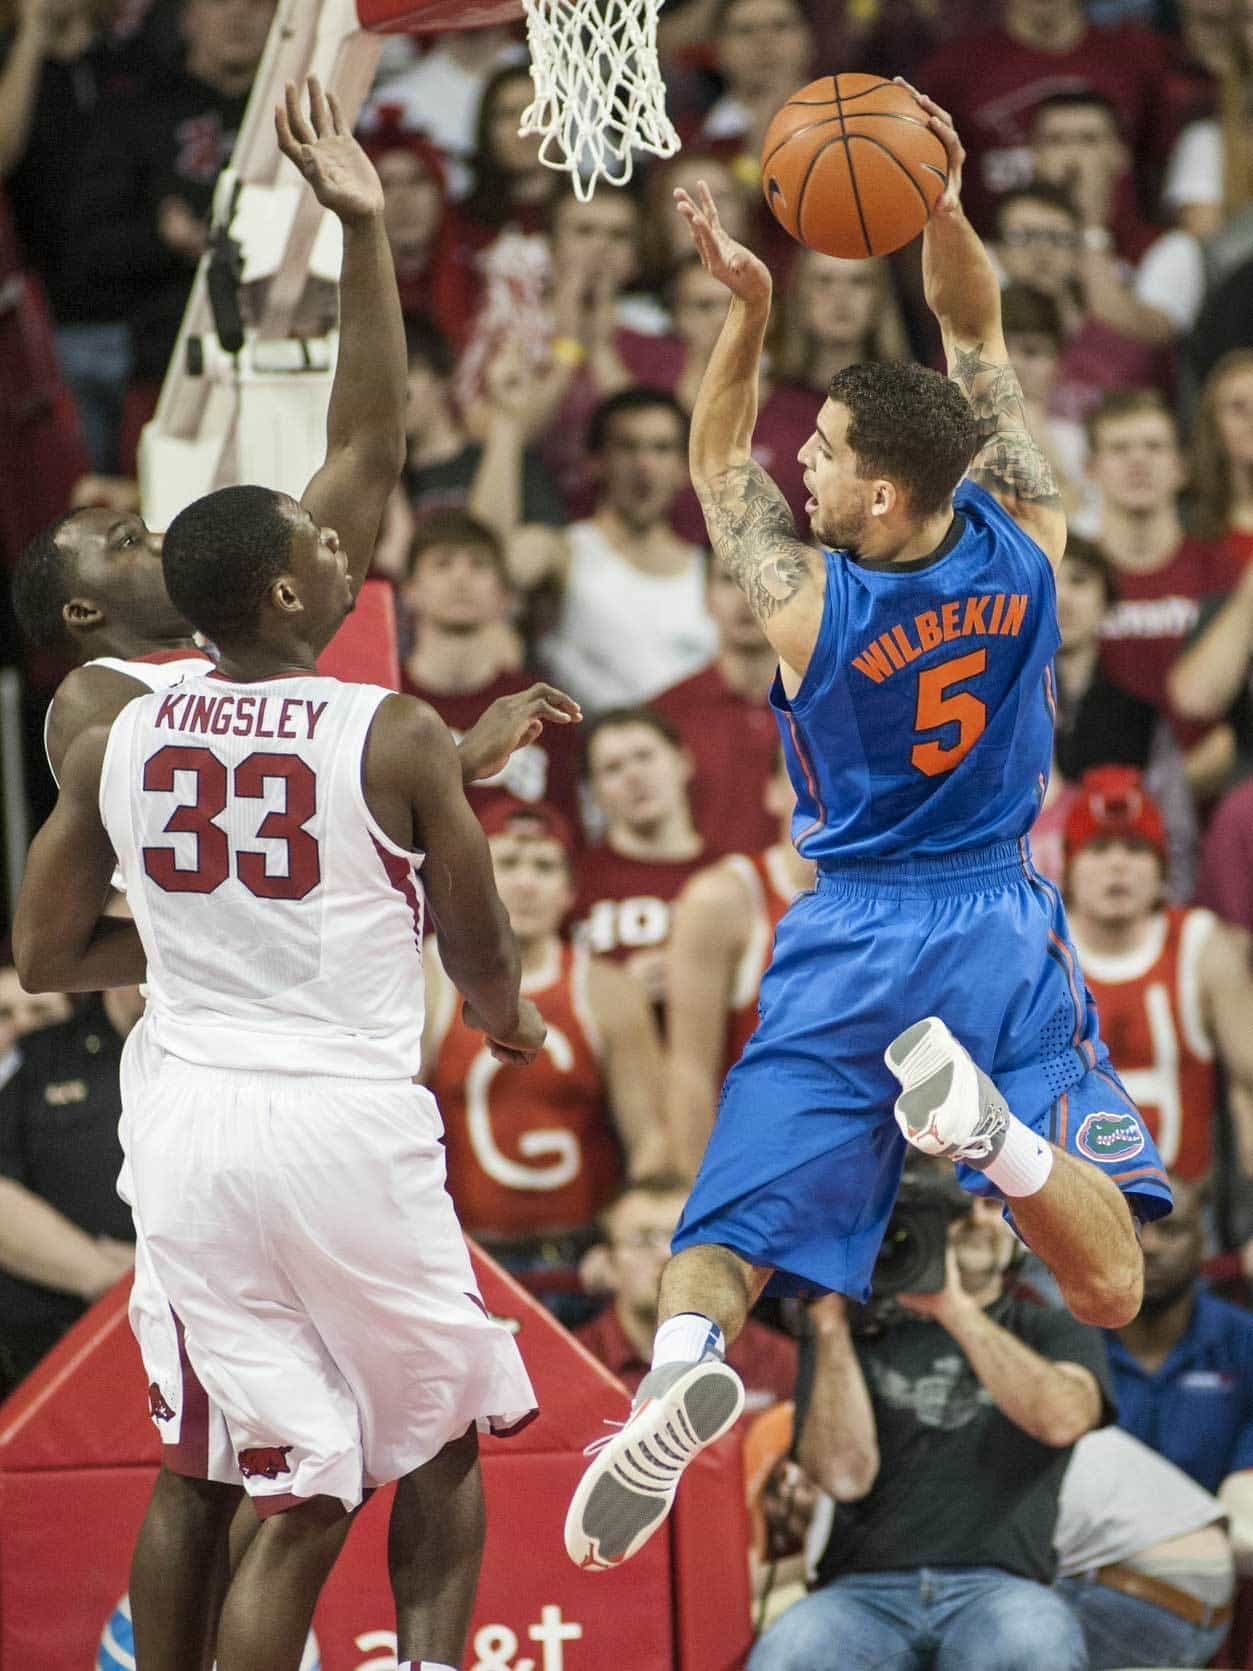 Jan 11, 2014; Fayetteville, AR, USA; Florida Gators guard Scottie Wilbekin (5) looks back to pass as Arkansas Razorbacks center Moses Kingsley (33) looks on during the first half of a game at Bud Walton Arena. Photo: Beth Hall-USA TODAY Sports